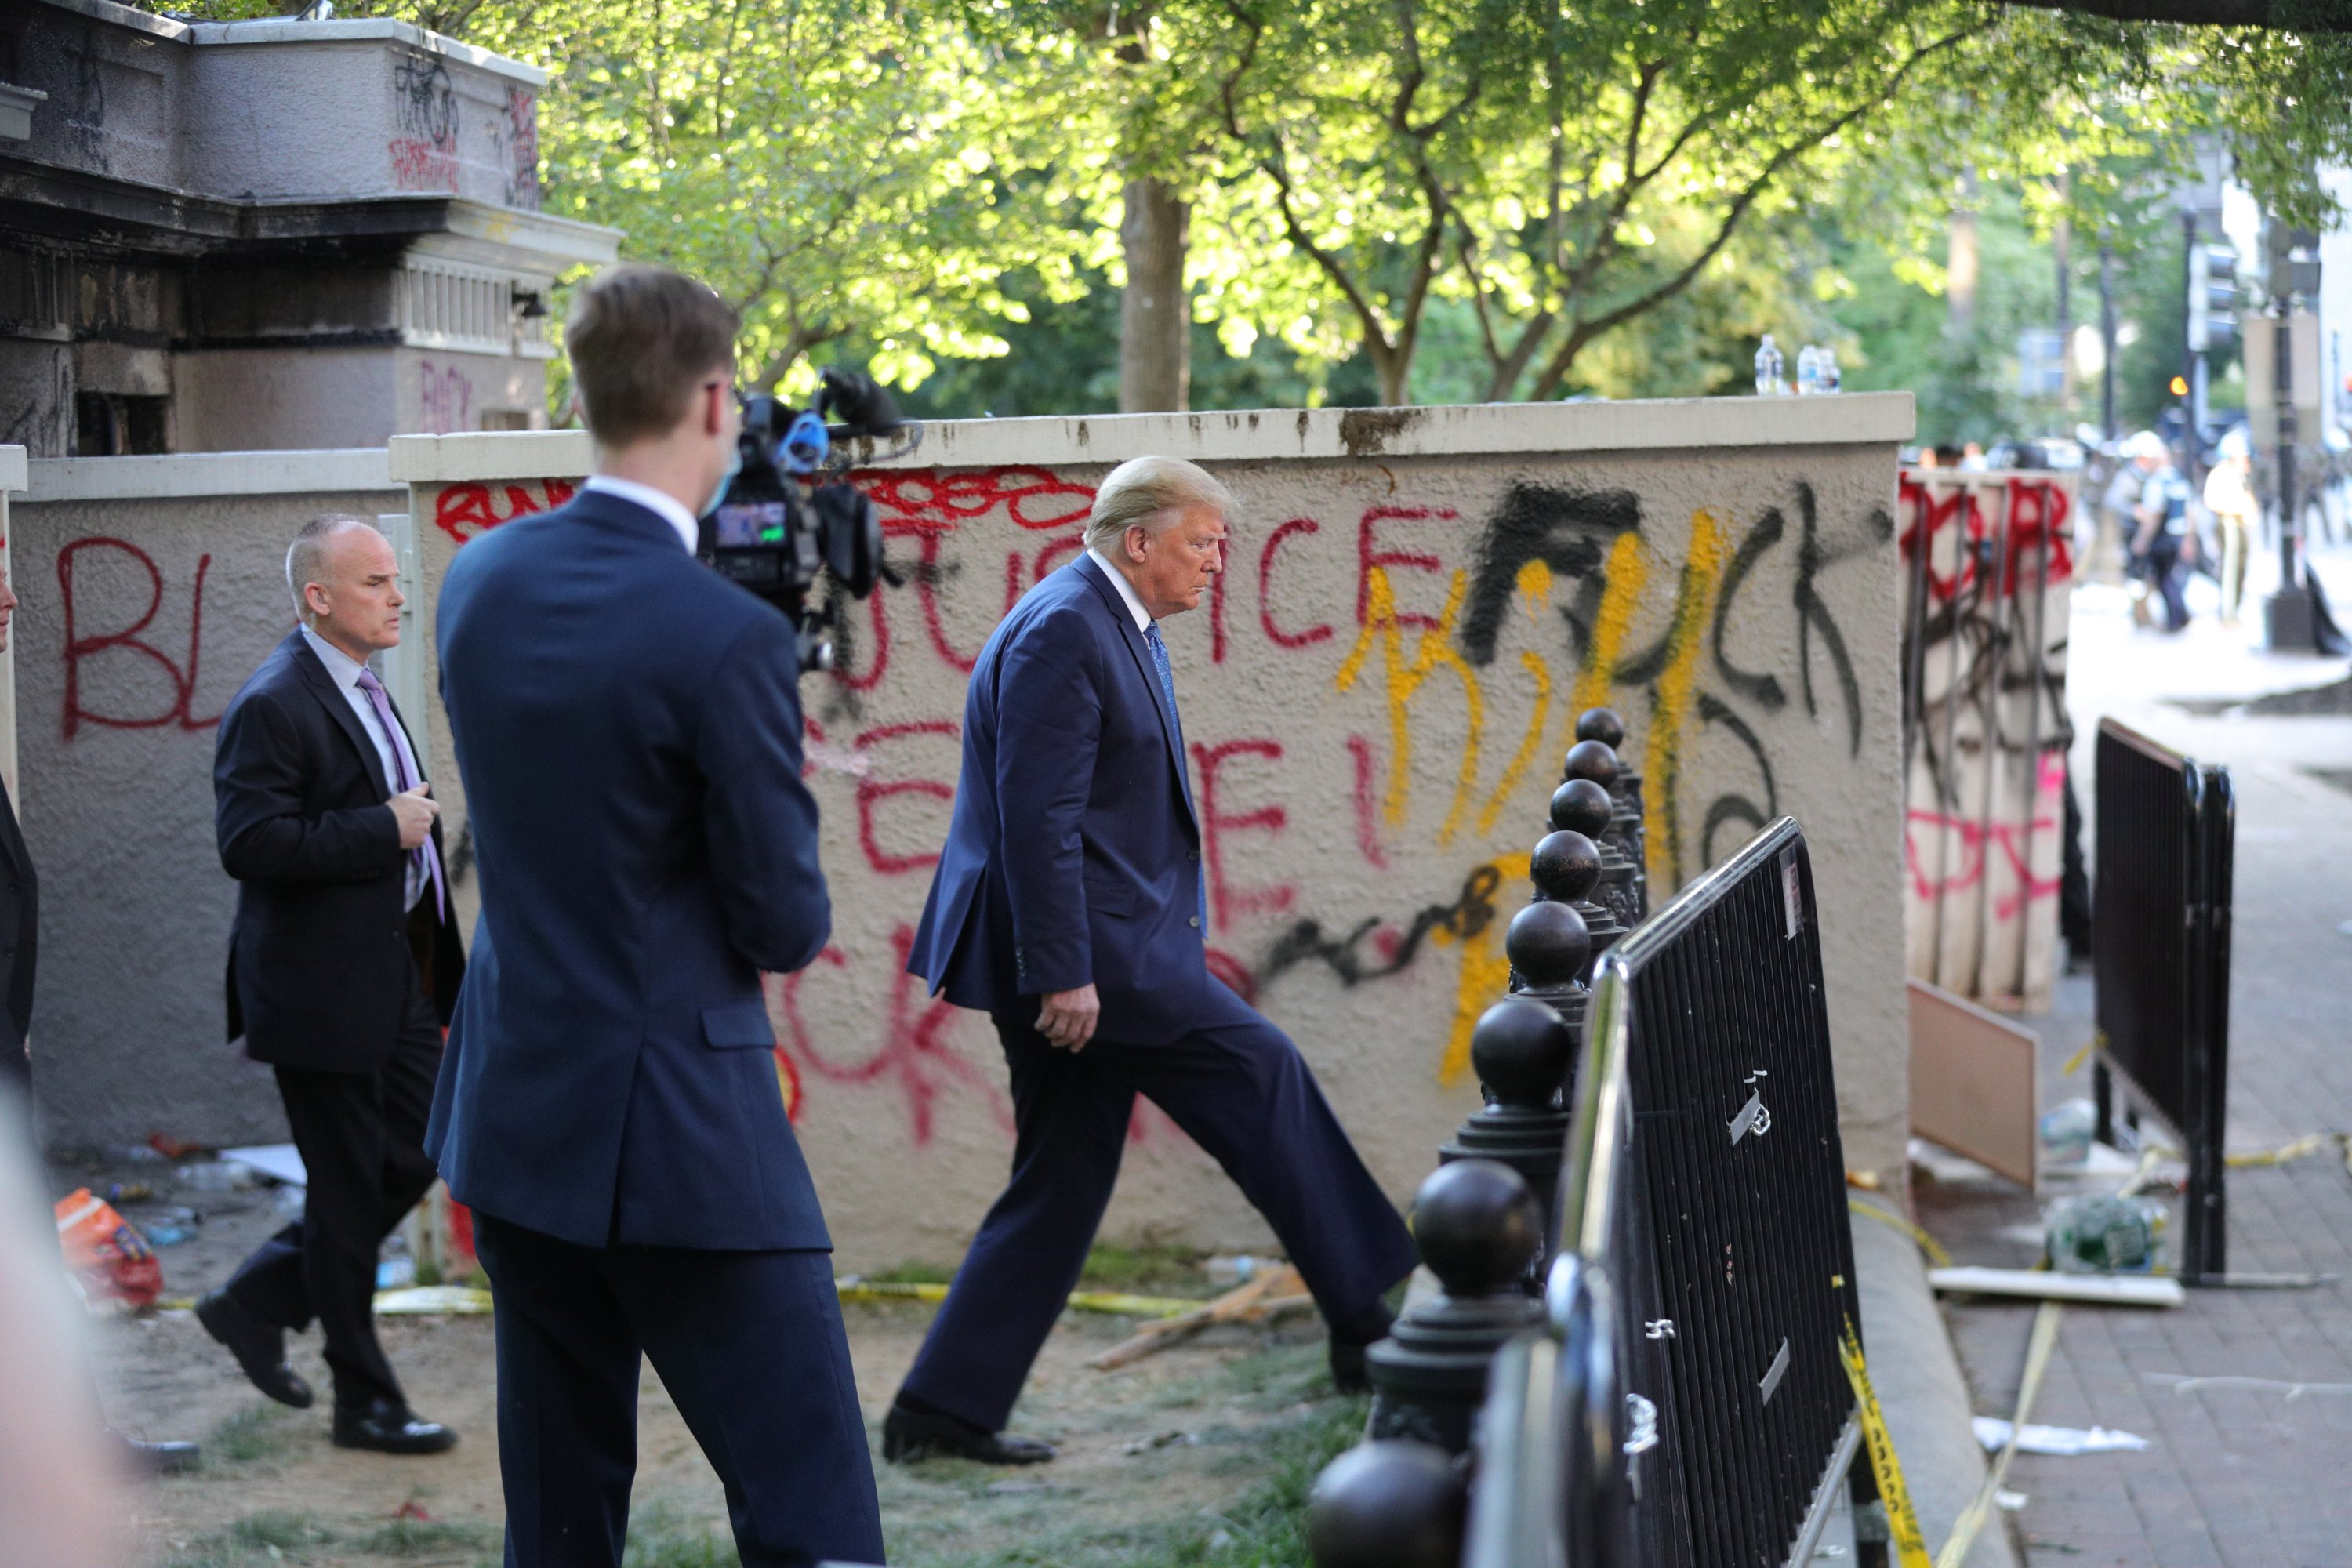 U.S. President Donald Trump walks past graffiti to visit St. John's Episcopal Church across from the White House in Washington, U.S., June 1, 2020. (Reuters Photo)